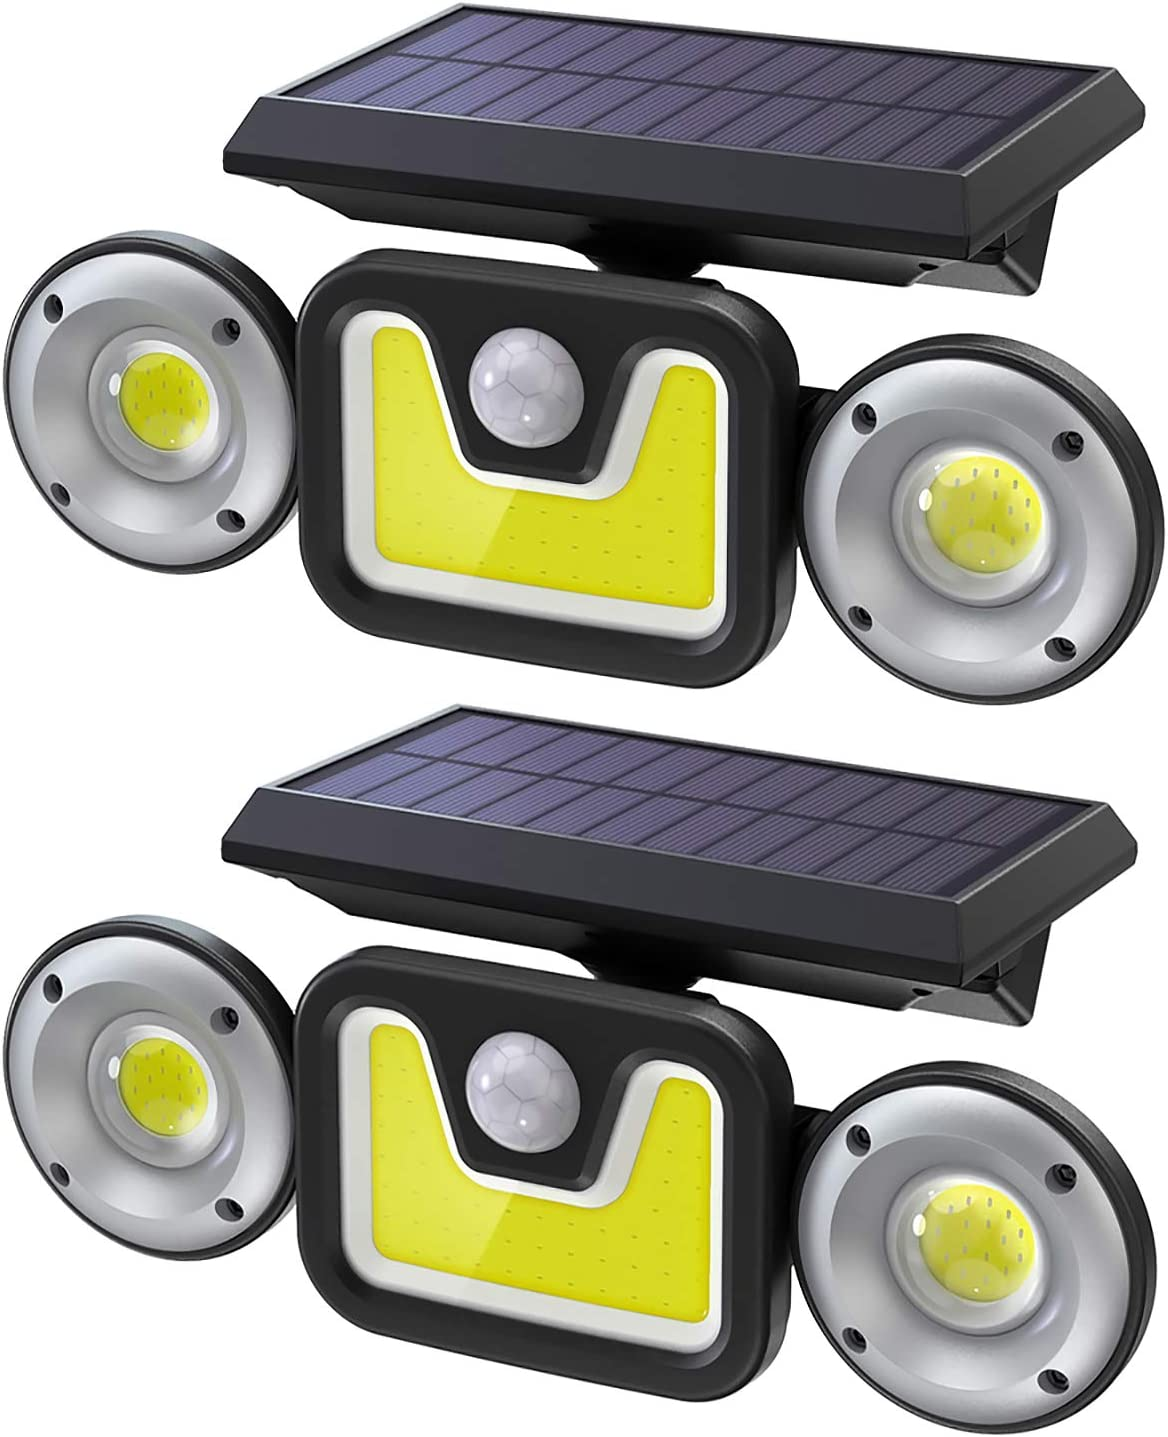 Ltteny 83 LED with 3 heads Solar Security Lights Outdoor Motion Sensor 2 Pack WAS £35.99 NOW £28.04 w/code JTNRWRRP @ Amazon